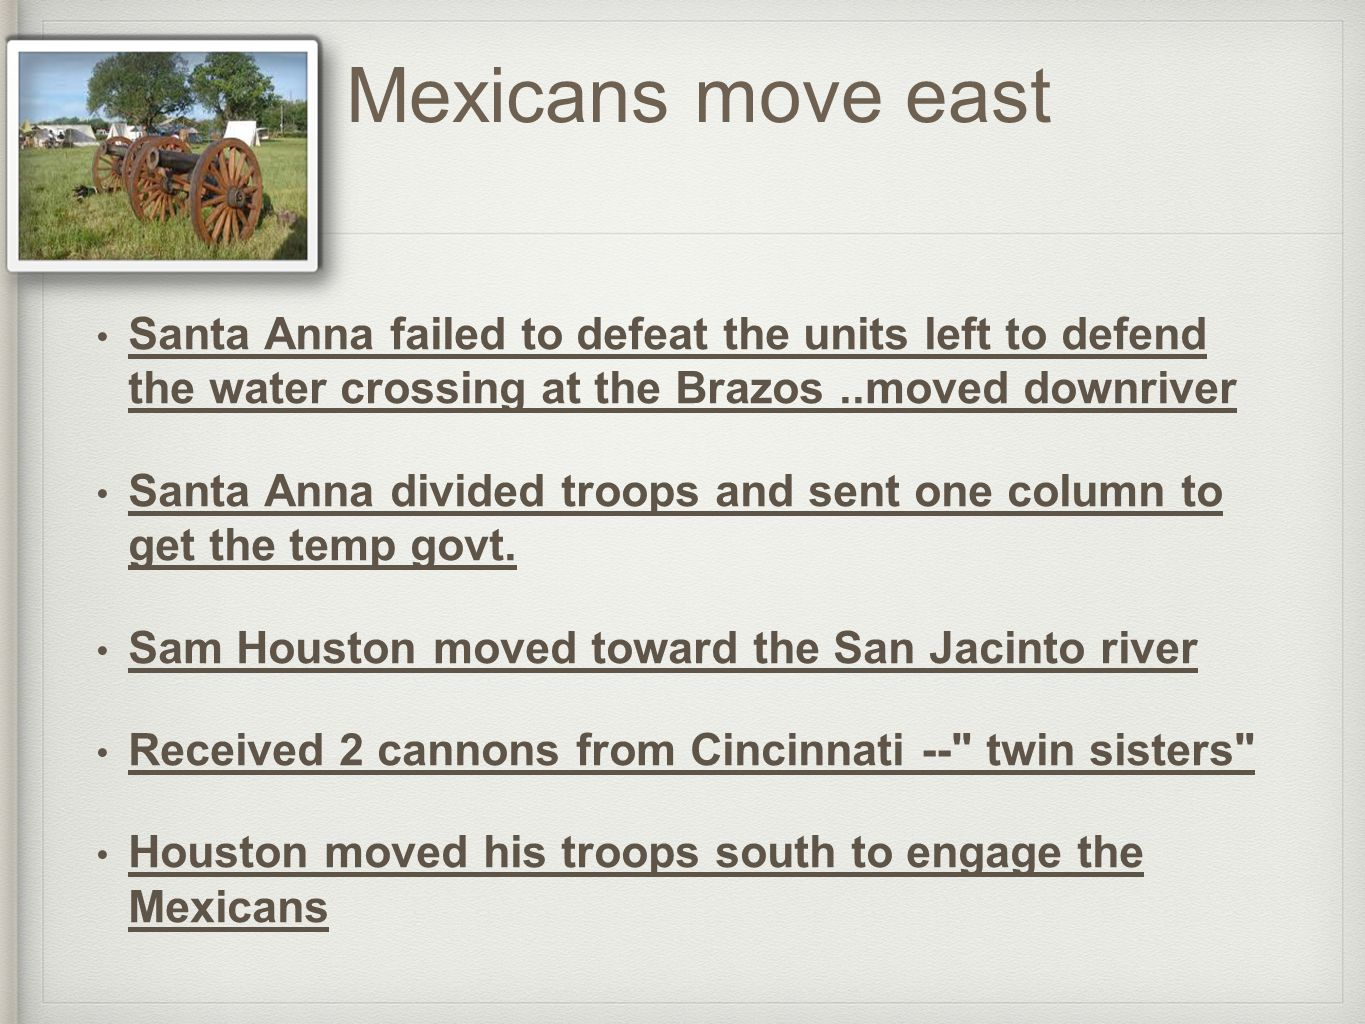 Mexicans move east Santa Anna failed to defeat the units left to defend the water crossing at the Brazos..moved downriver Santa Anna divided troops and sent one column to get the temp govt.